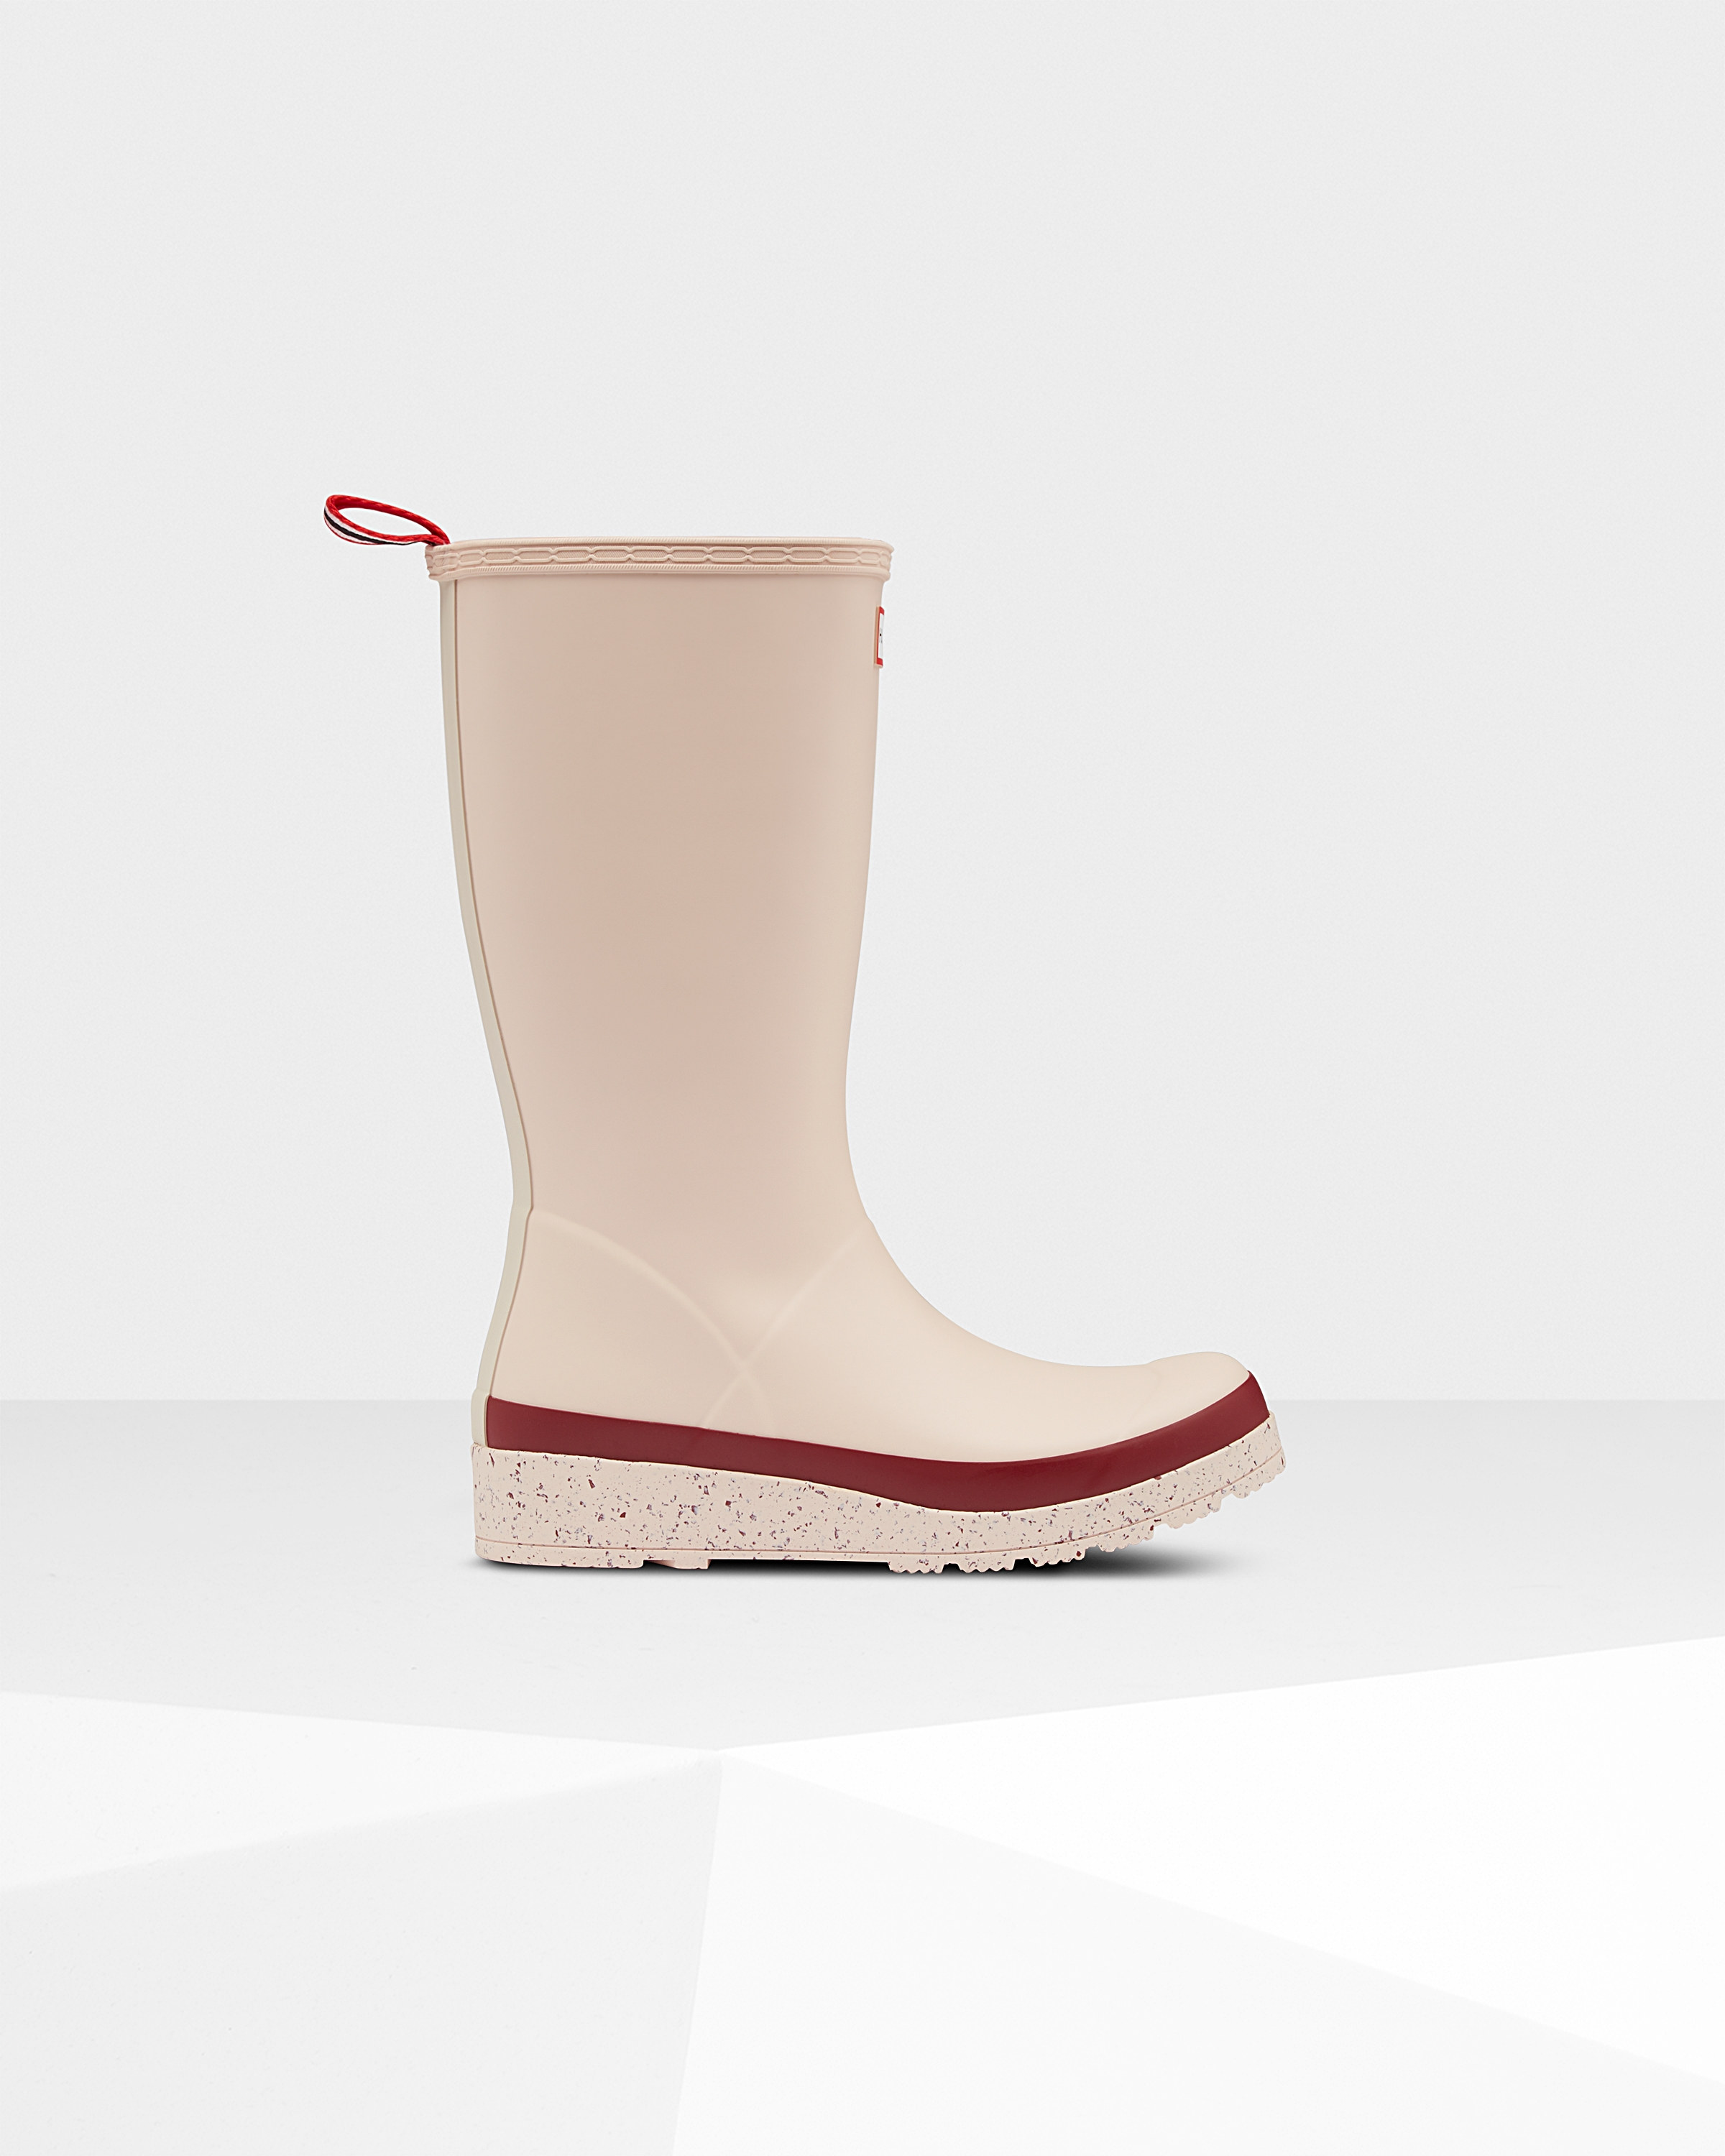 Women's Original Play Tall Speckle Rain Boots: Moonstone Pink/autumn Stone Red   Official Hunter Boots Store